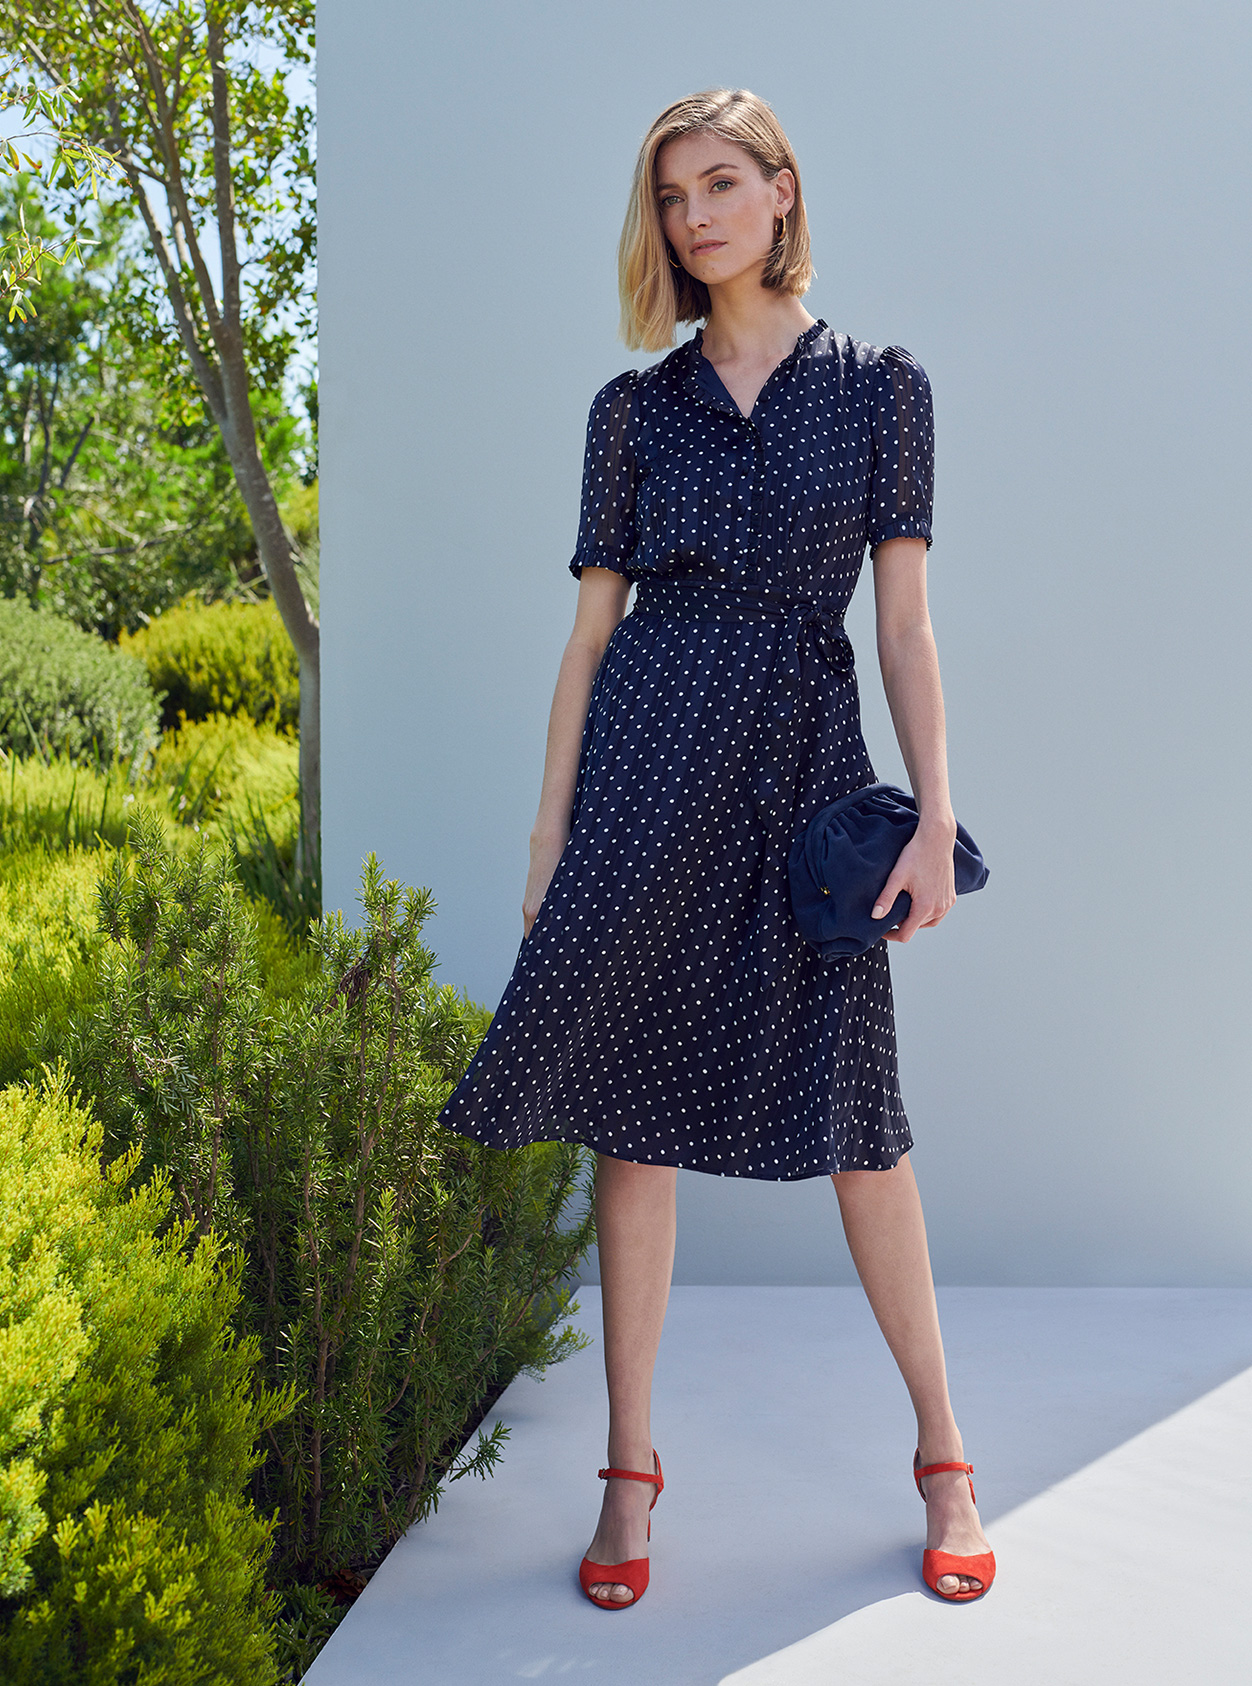 A woman poses in a navy blue and white spotty silk shirt dress with red heeled sandals.